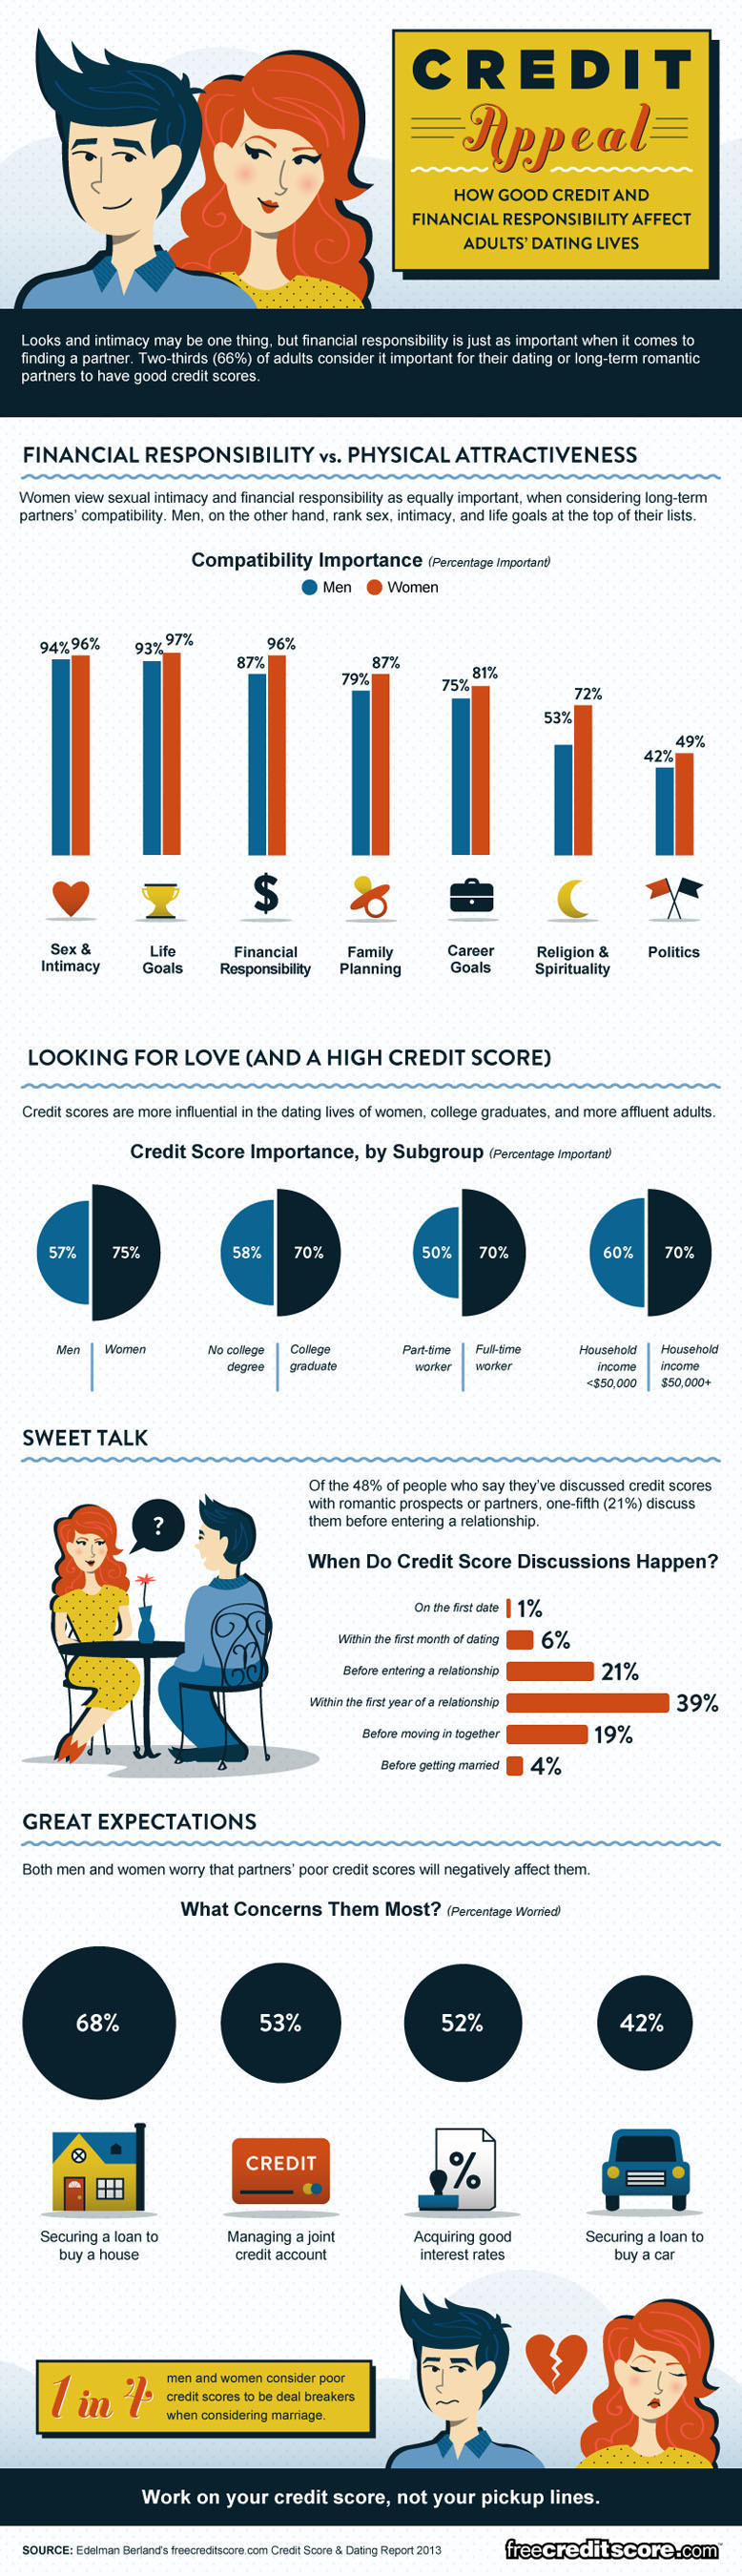 Credit Appeal - How Good Credit and Financial Responsibility Affect Adult's Dating Lives. Source: freecreditscore.com.  (PRNewsFoto/freecreditscore.com)